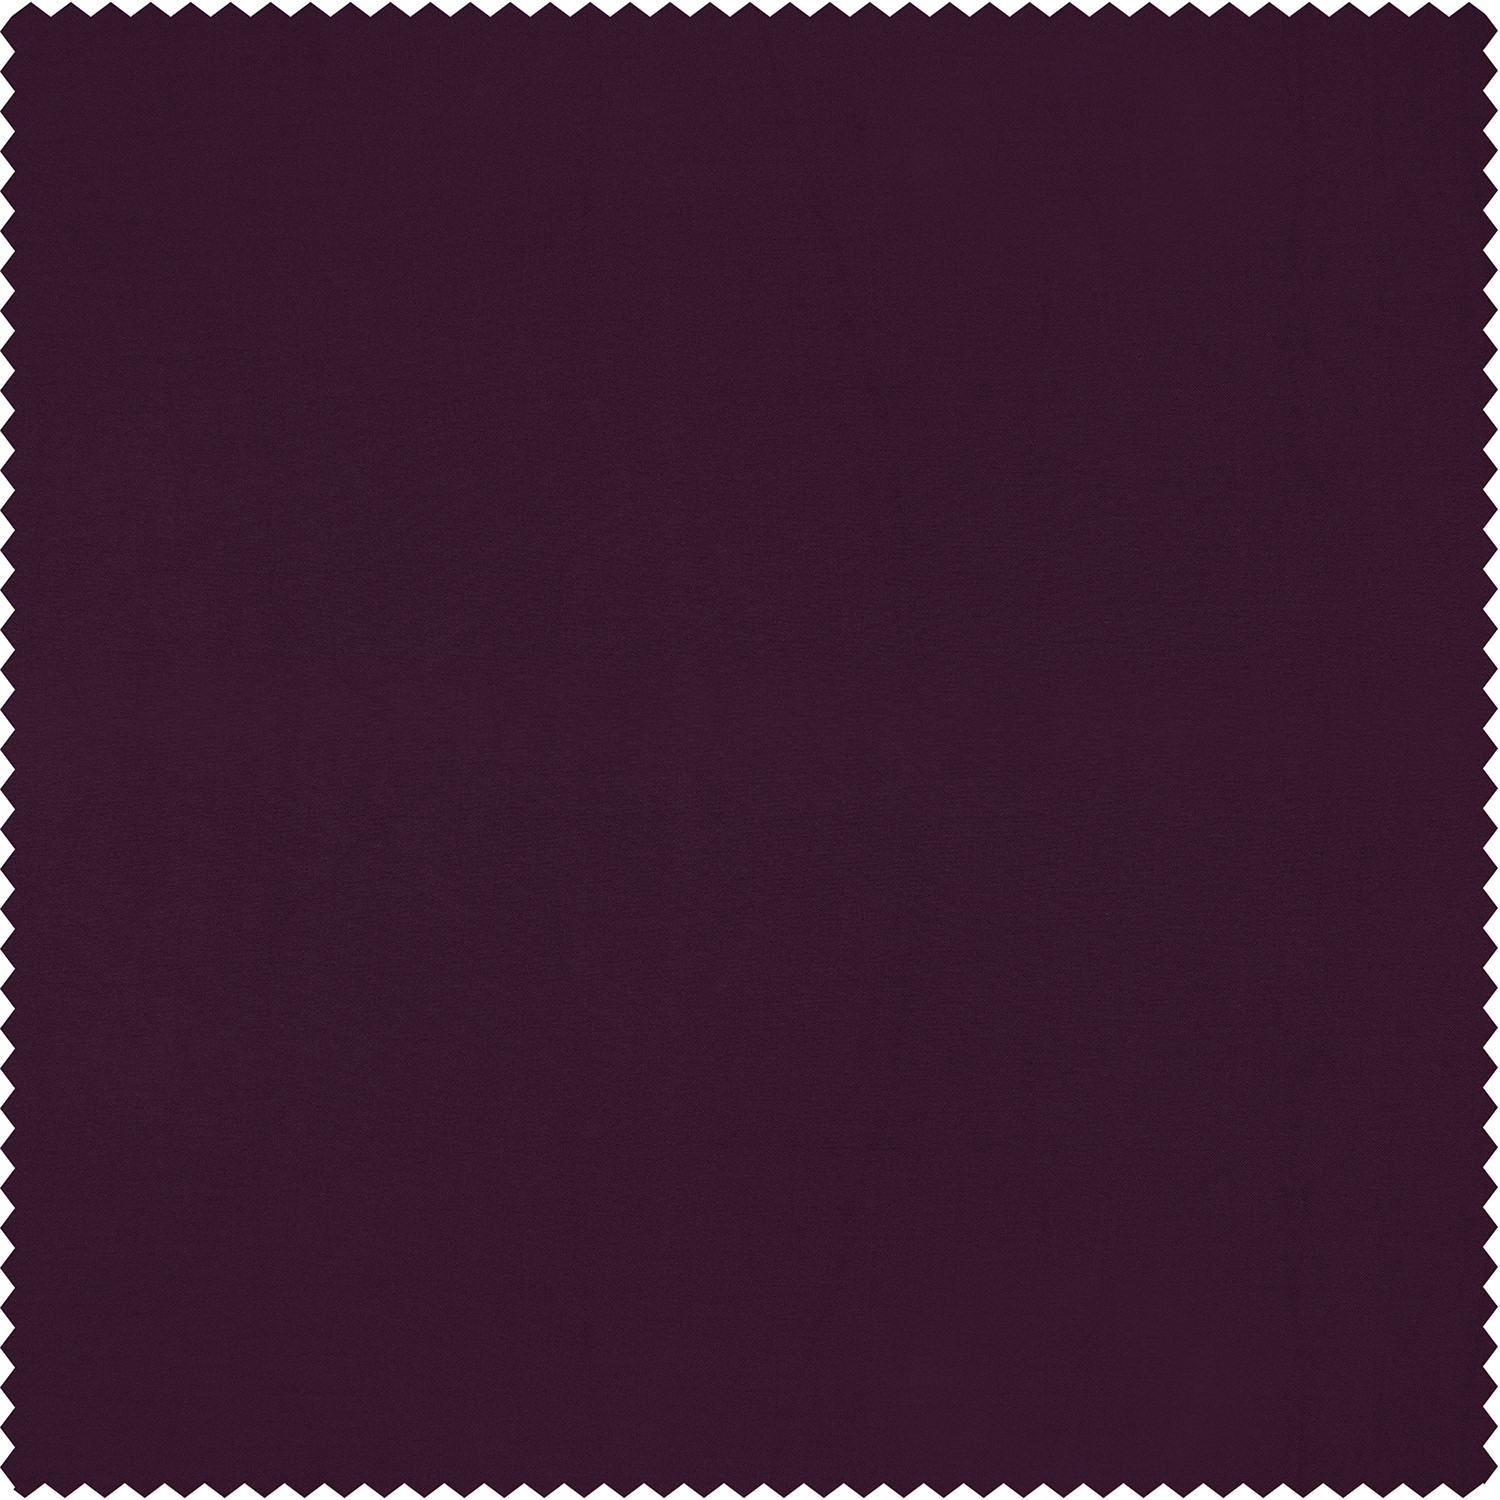 Royal Port Faux Silk Taffeta Swatch